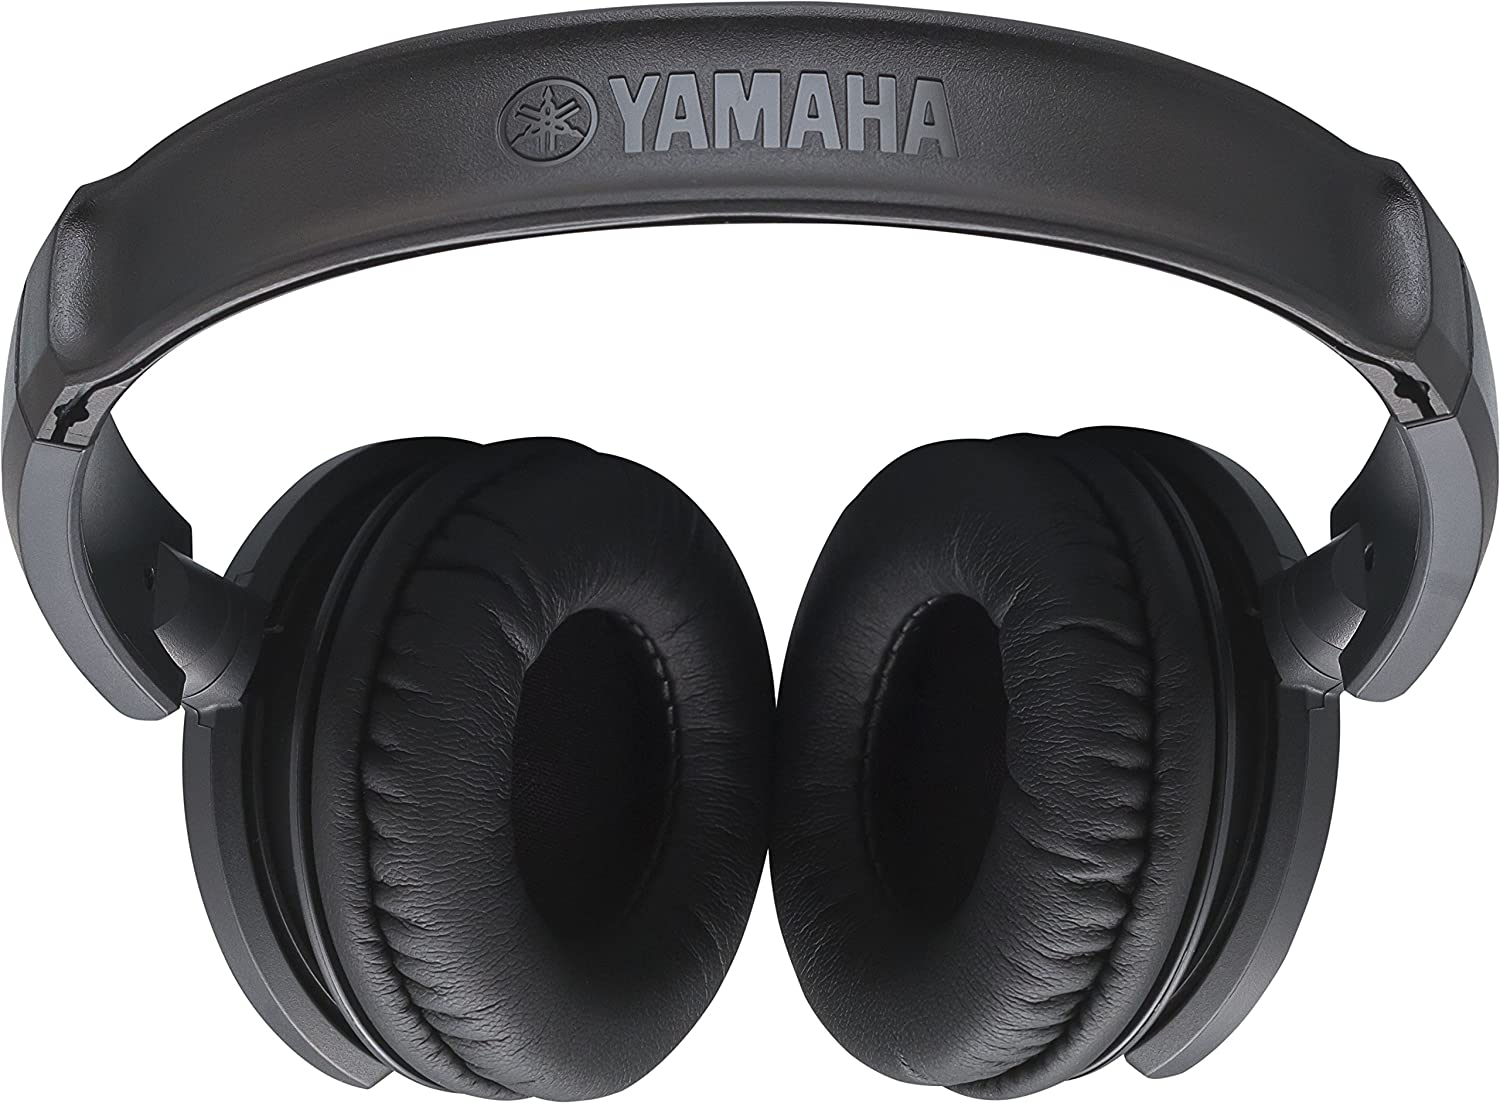 yamaha headphones. yamaha rh1c portable headphones: yamaha: amazon.ca: musical instruments, stage \u0026 studio headphones a